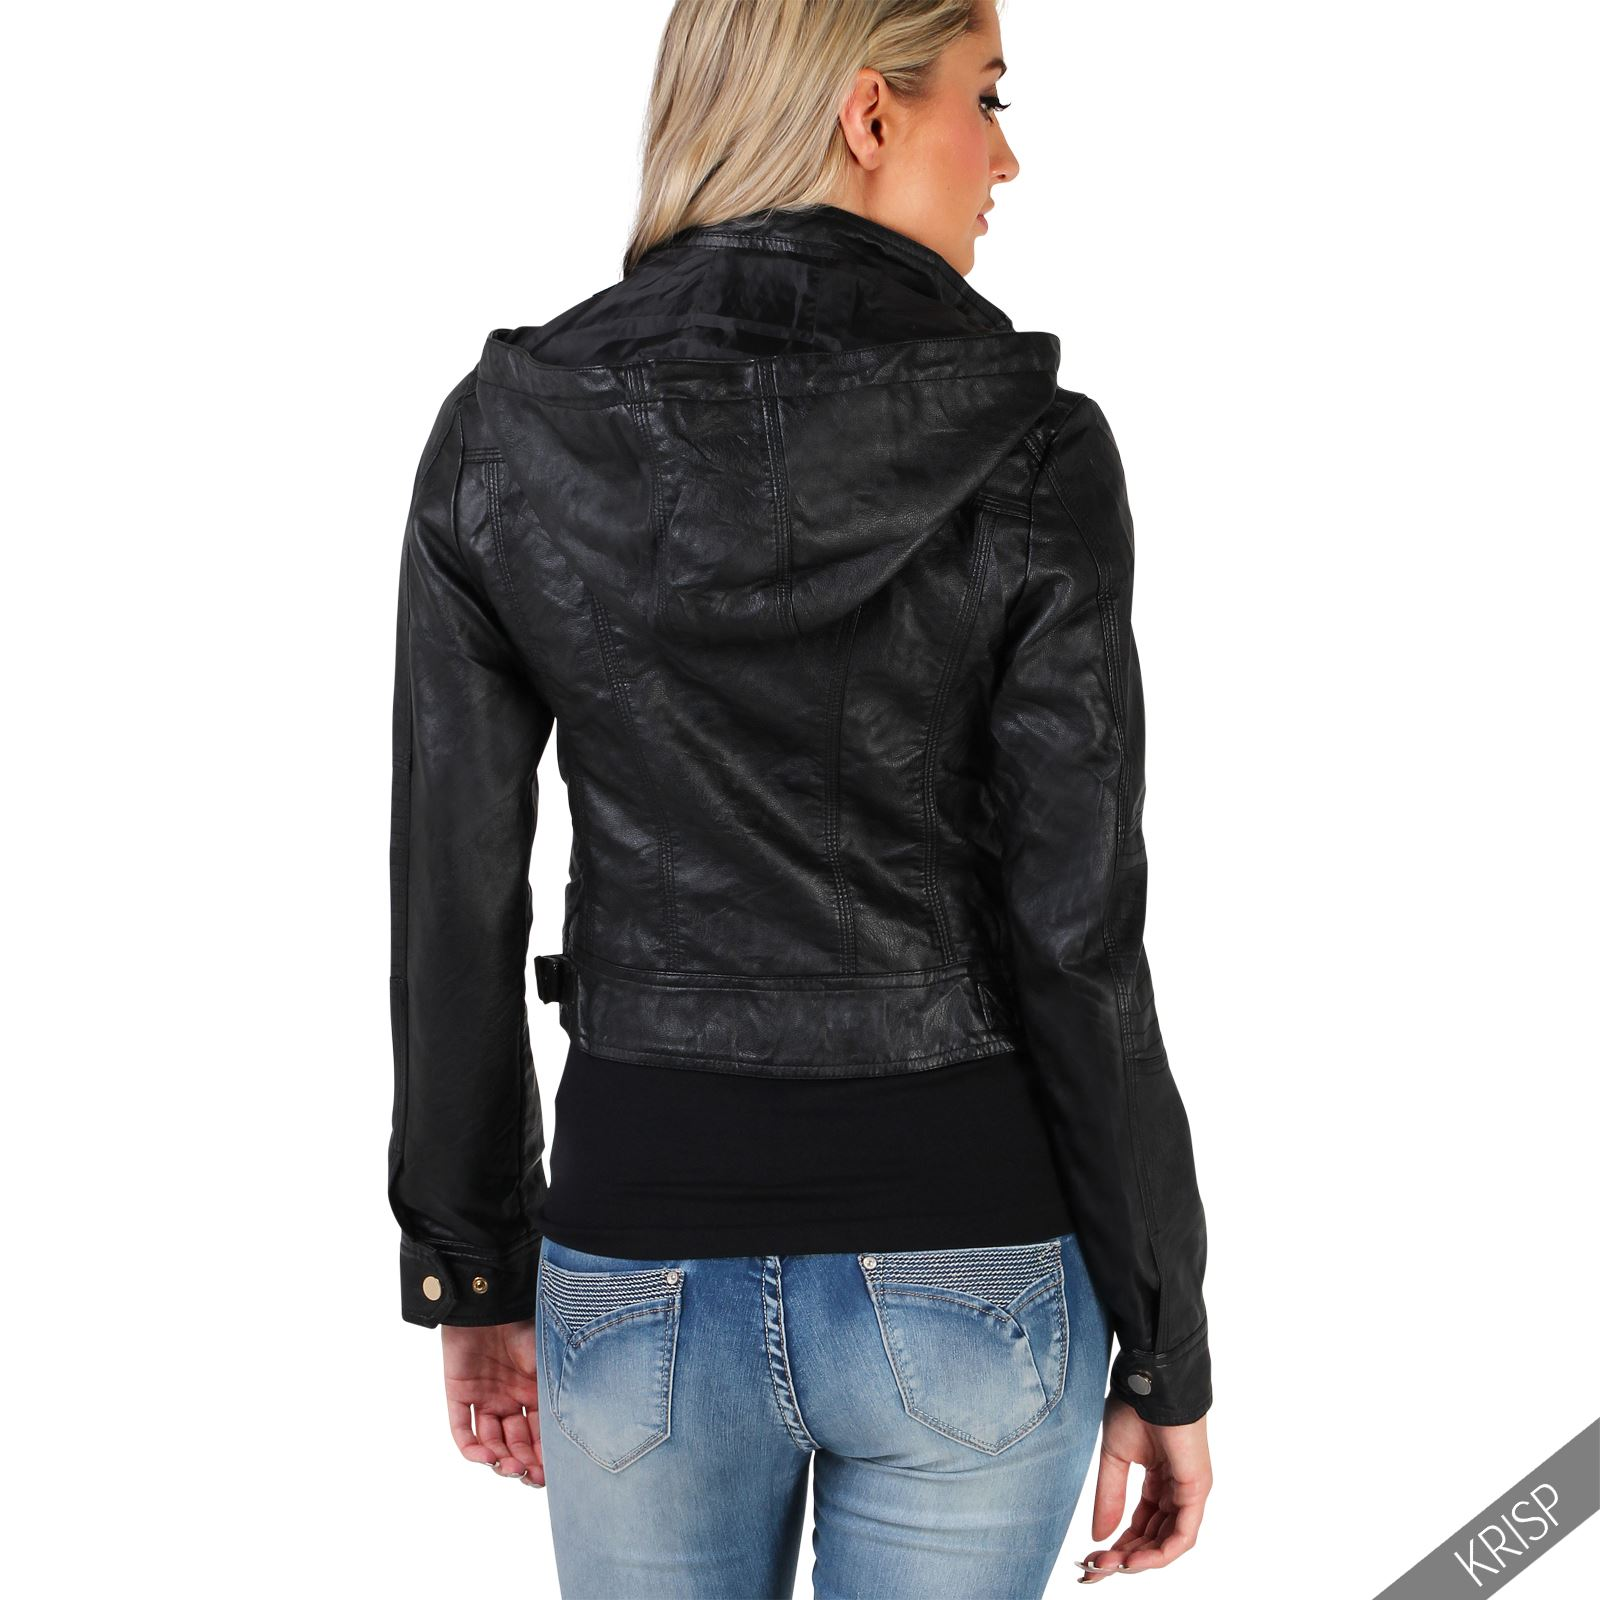 damen kurze kunstleder jacke abnehmbare kapuze lederjacke bikerjacke hoodie ebay. Black Bedroom Furniture Sets. Home Design Ideas